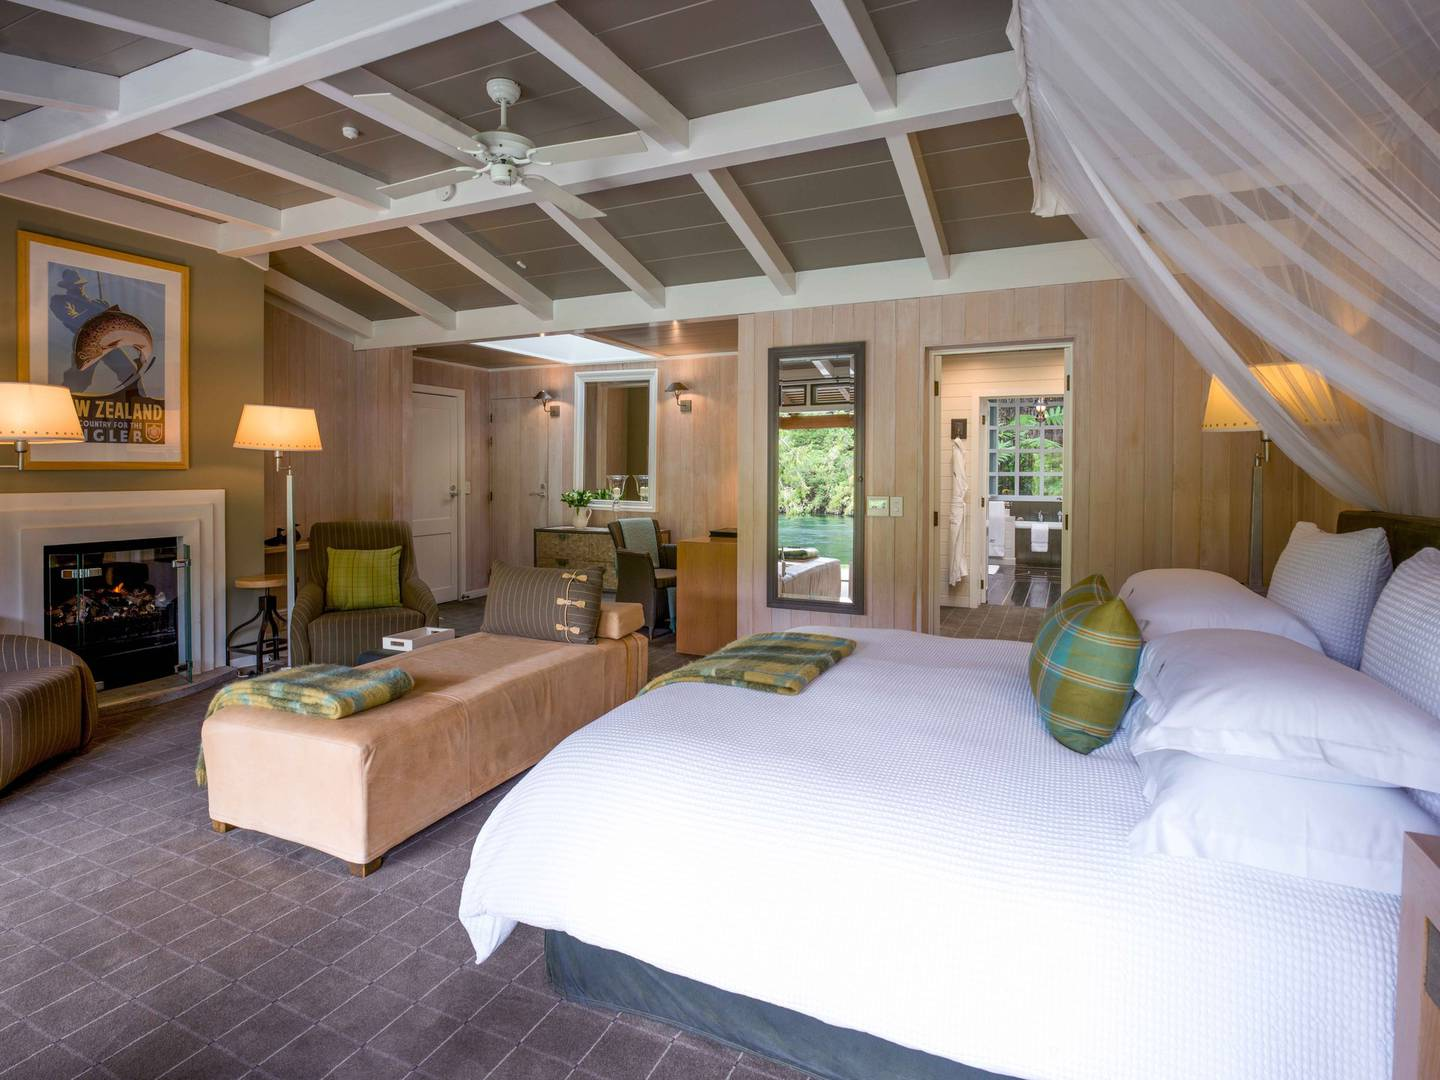 There are 20 junior lodge suites at Huka Lodge, all looking out to the Waikato River. Photo / Supplied